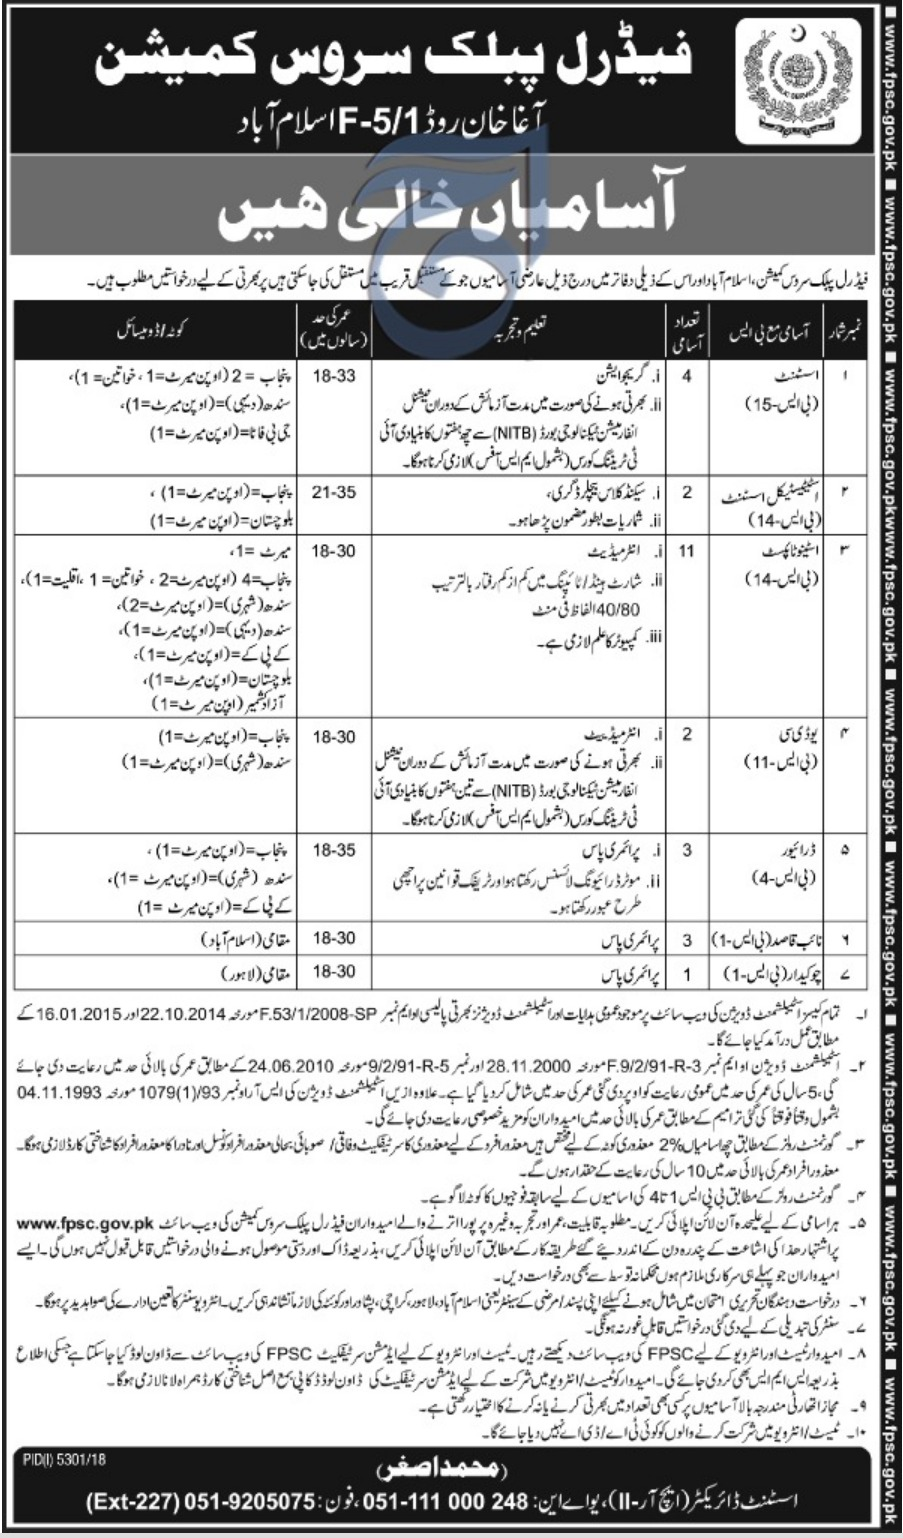 Federal Public Service Commission FPSC Islamabad Jobs 2019 Latest